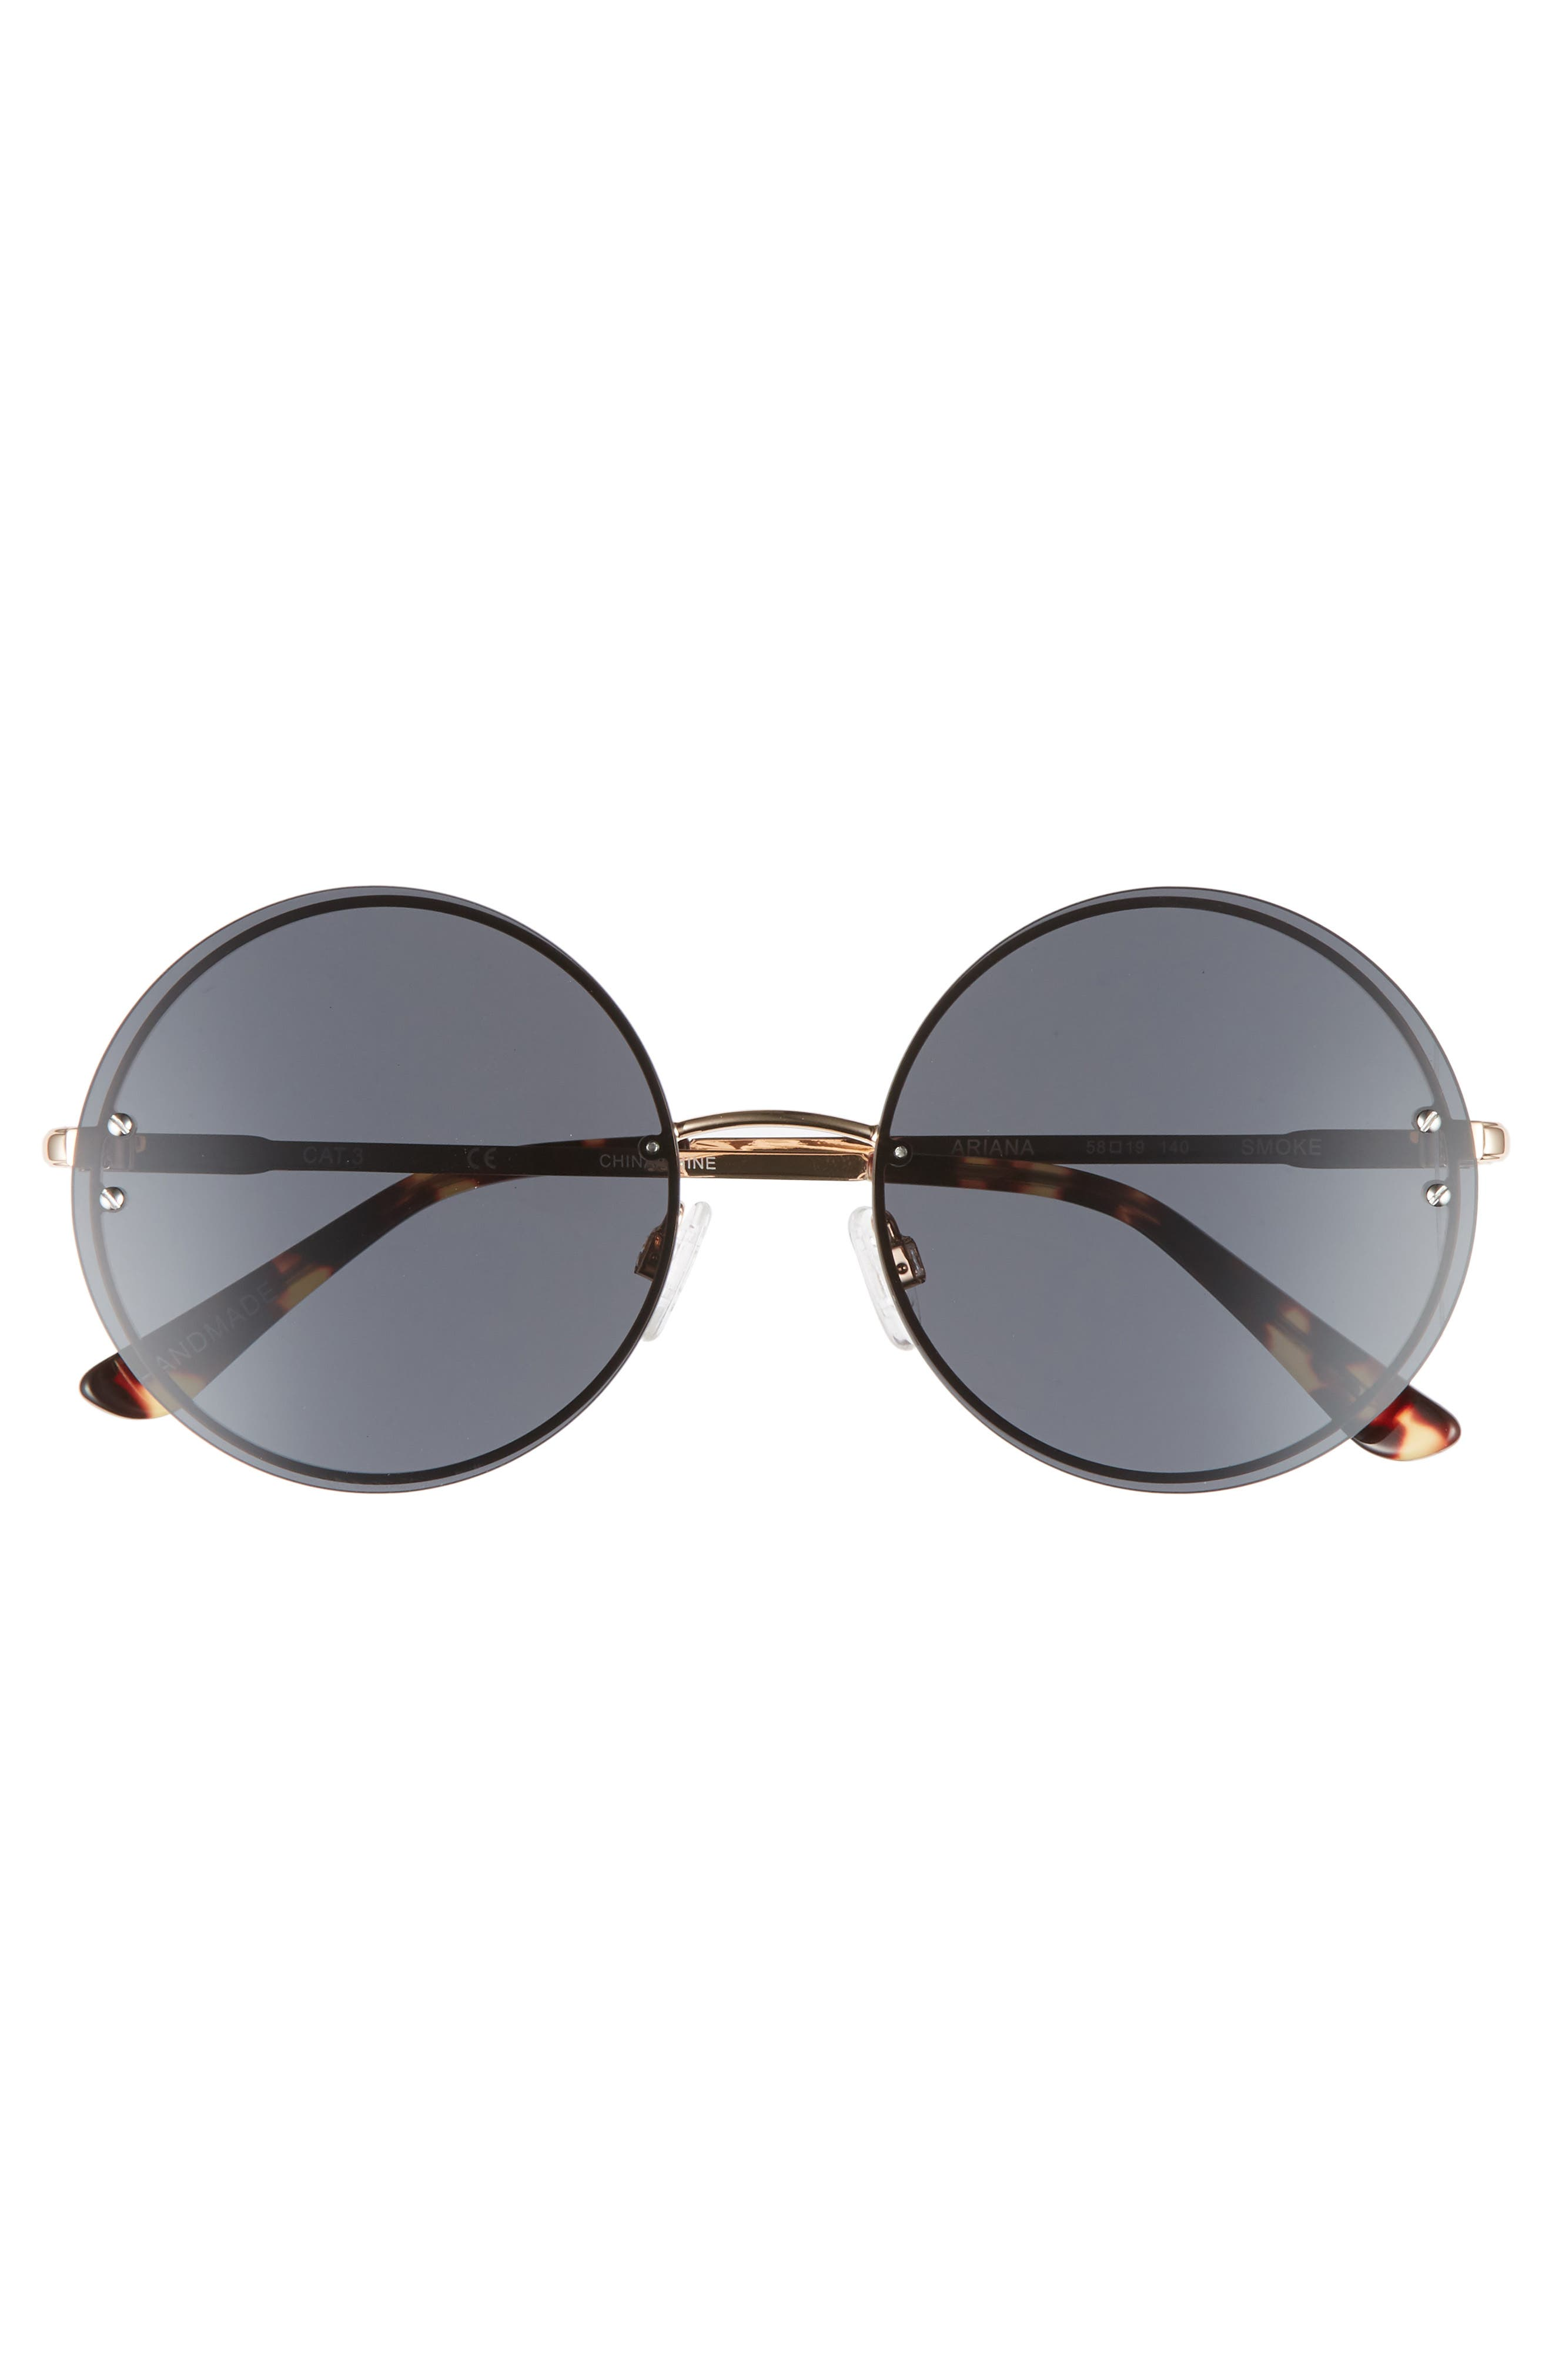 Ariana 58mm Round Sunglasses,                             Alternate thumbnail 3, color,                             Solid Smoke